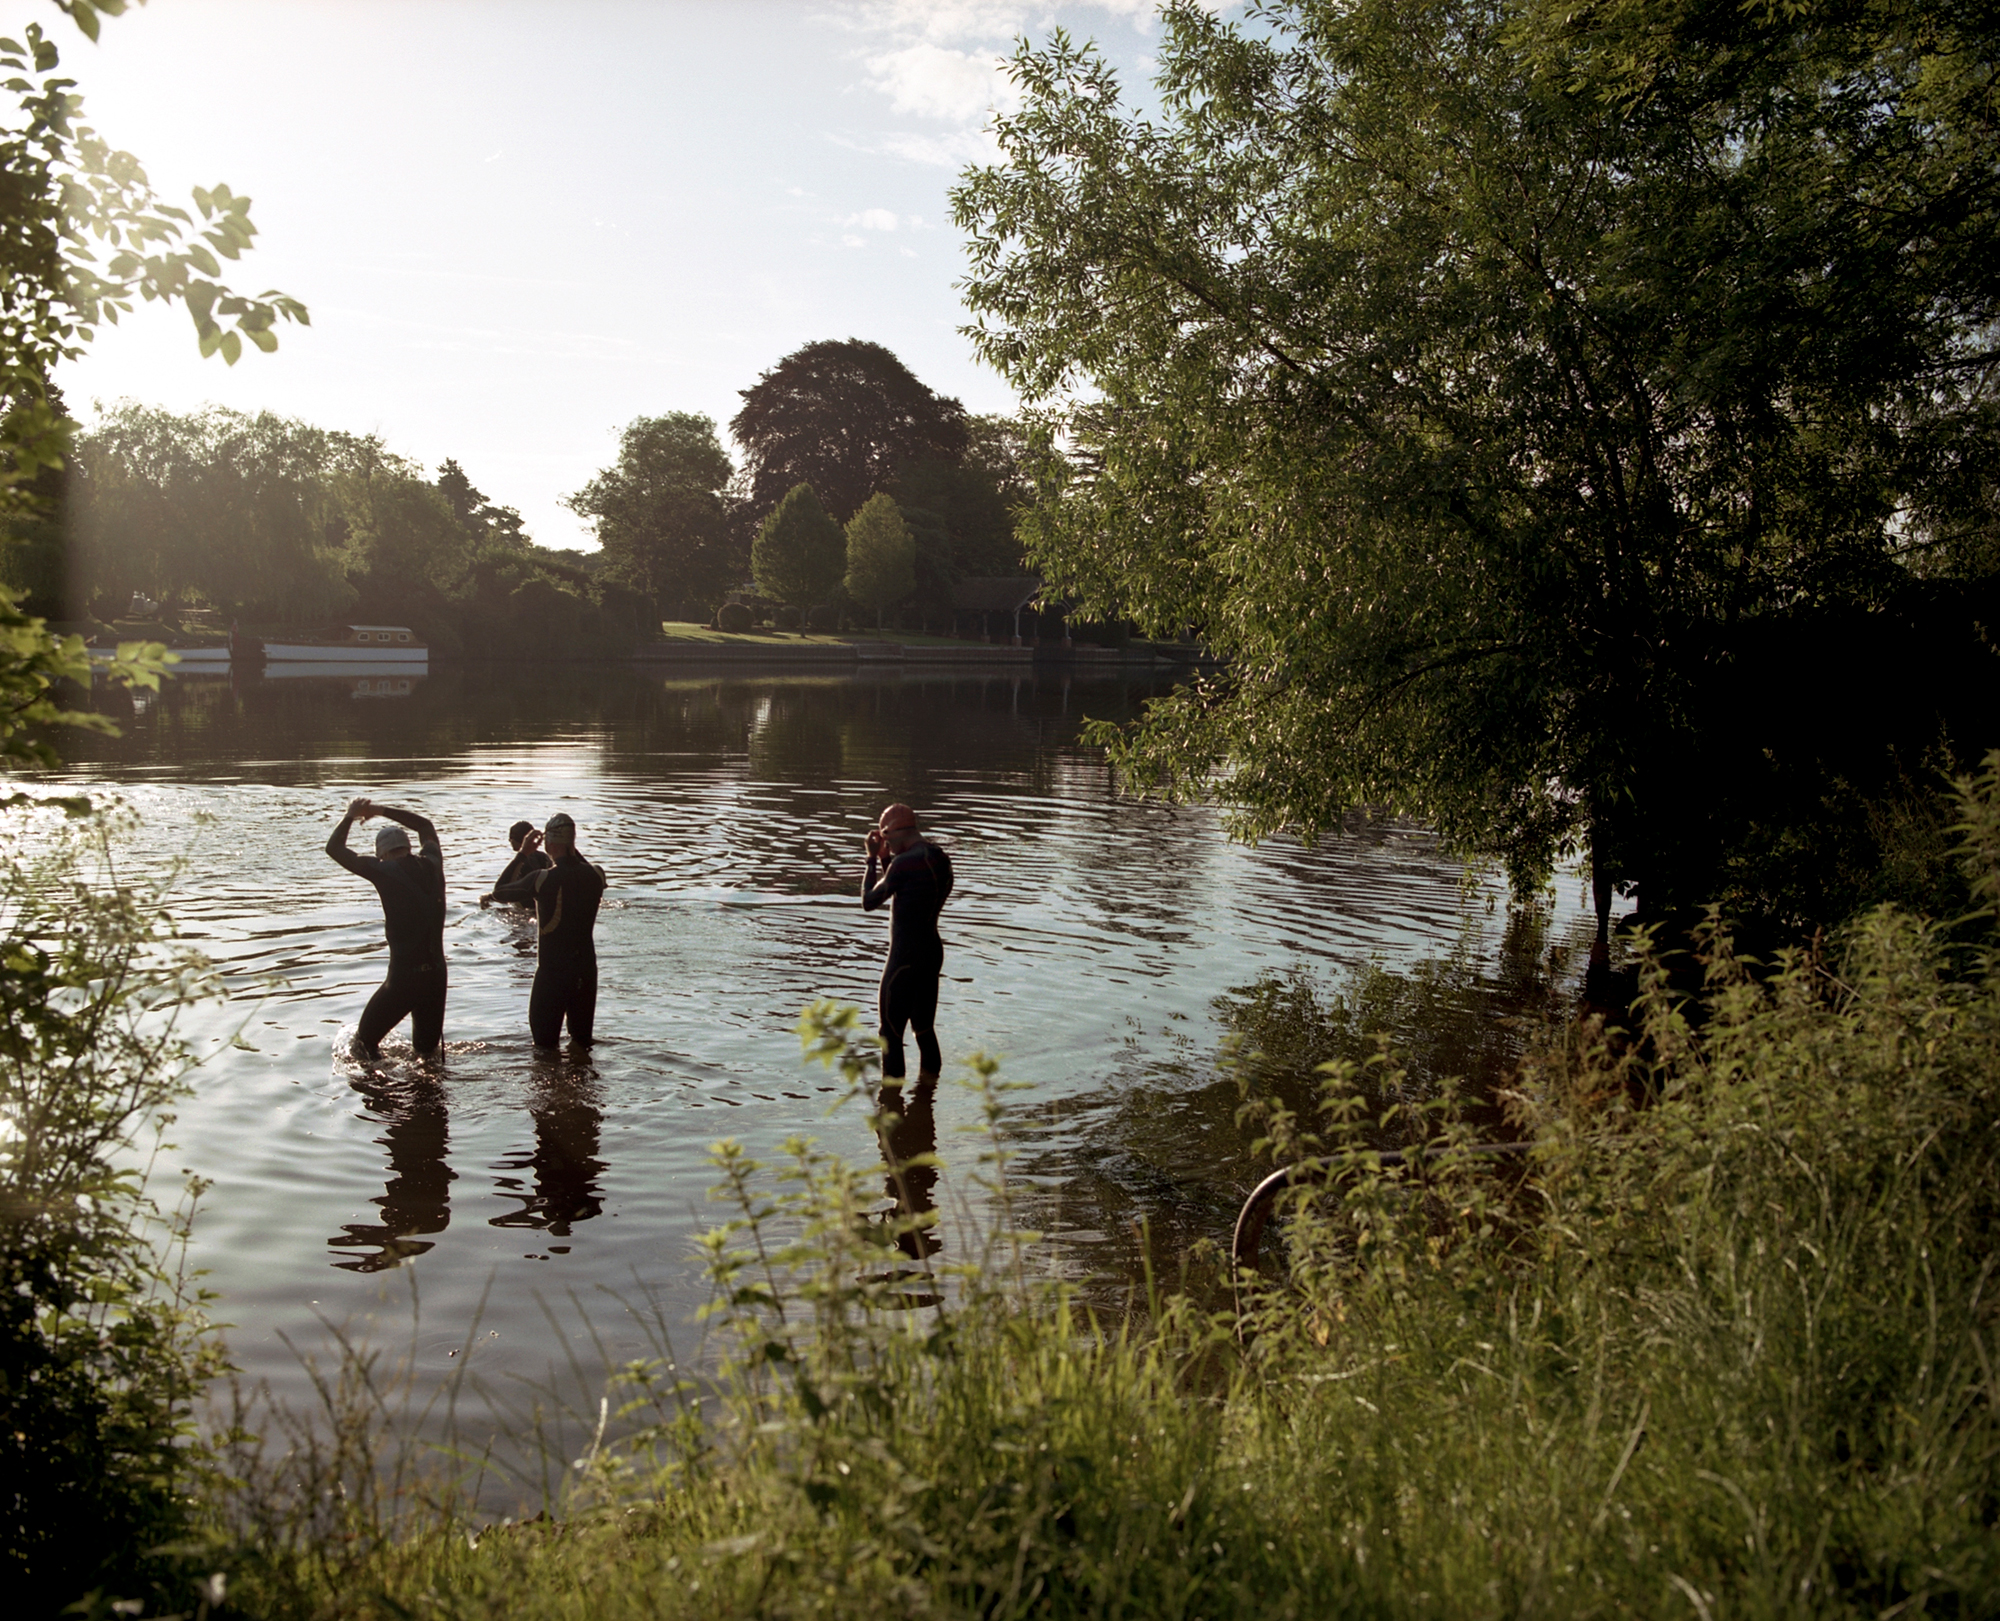 A long term personal project that takes me along the river Thames, shooting people and places as I go.